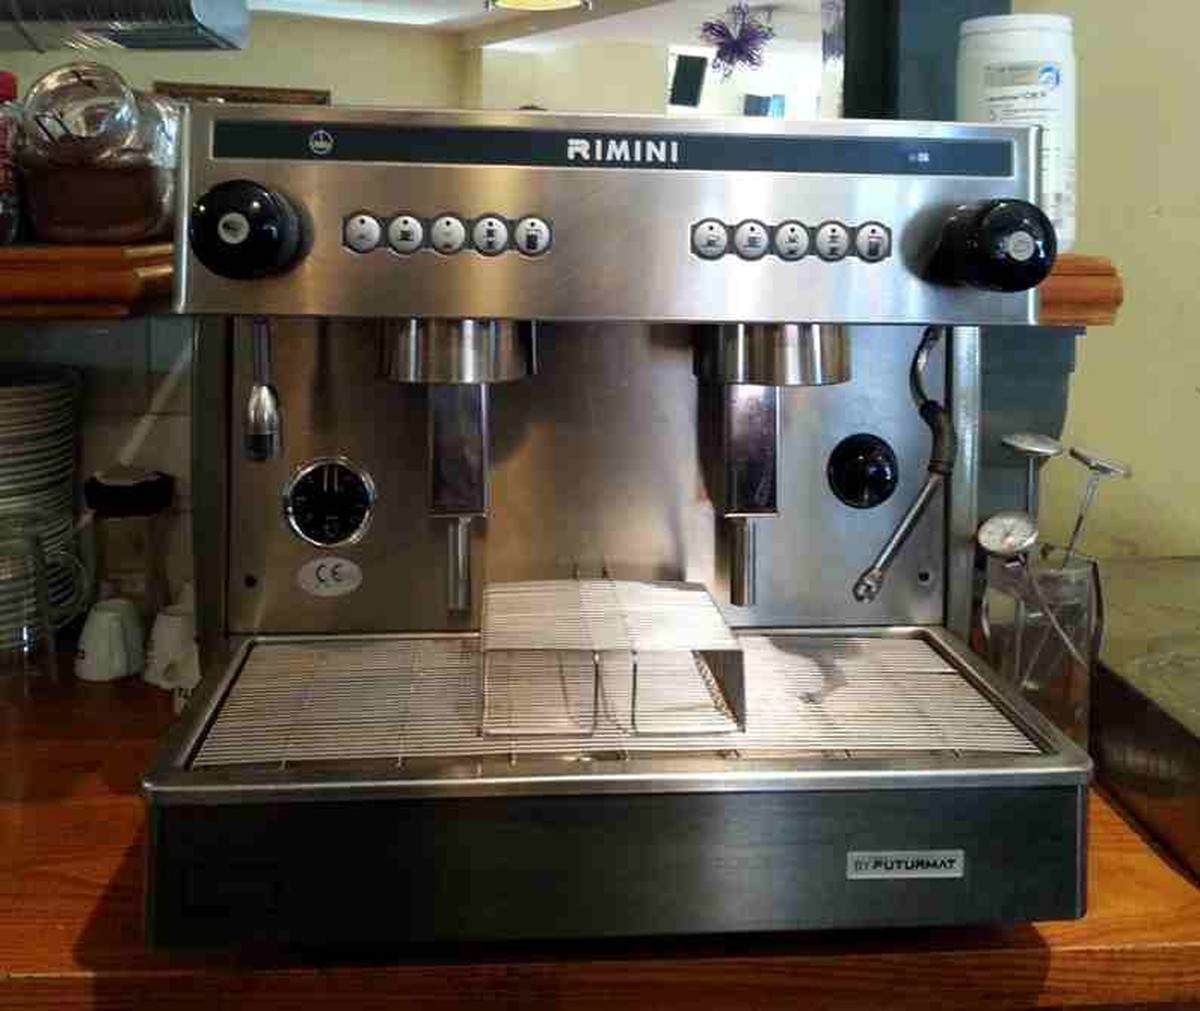 Electronic Coffee Machine Commercial Sale secondhand catering equipment 2 group espresso machines futurmat rimini commercial coffee machine